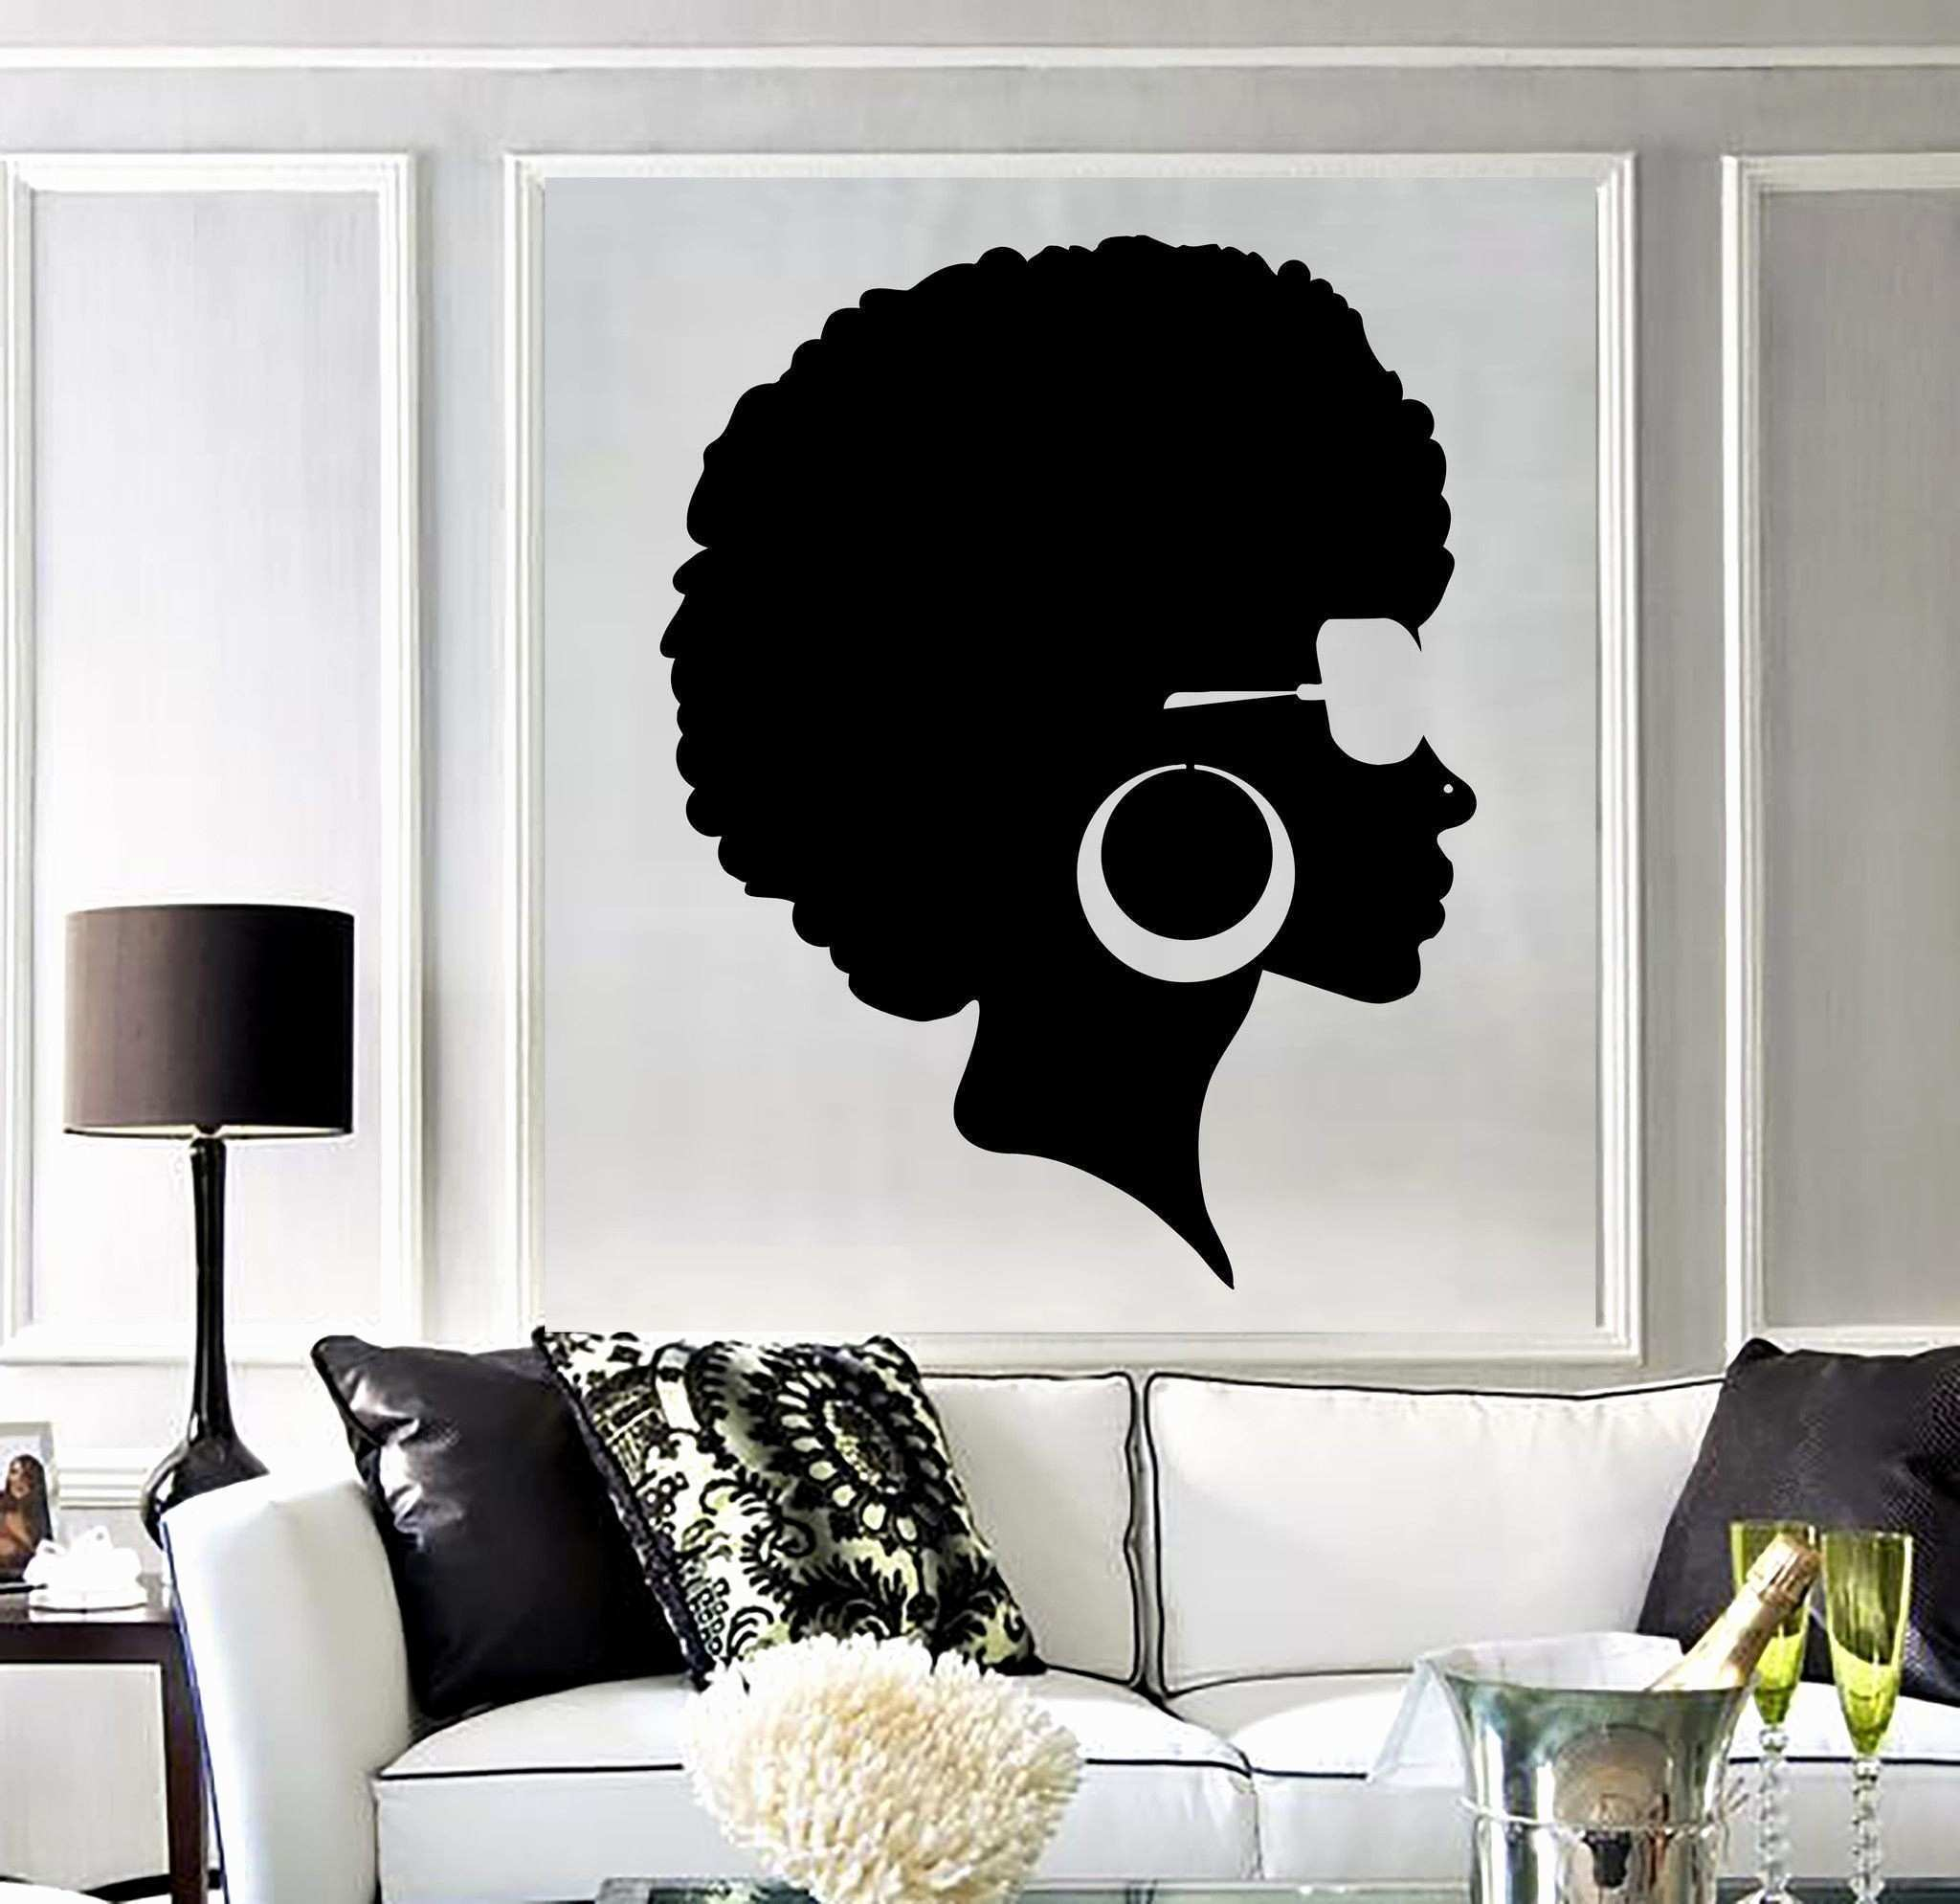 Home Wall Decor Stickers Luxury Wall Art D C3 A3 C2 A9cor Ideas for